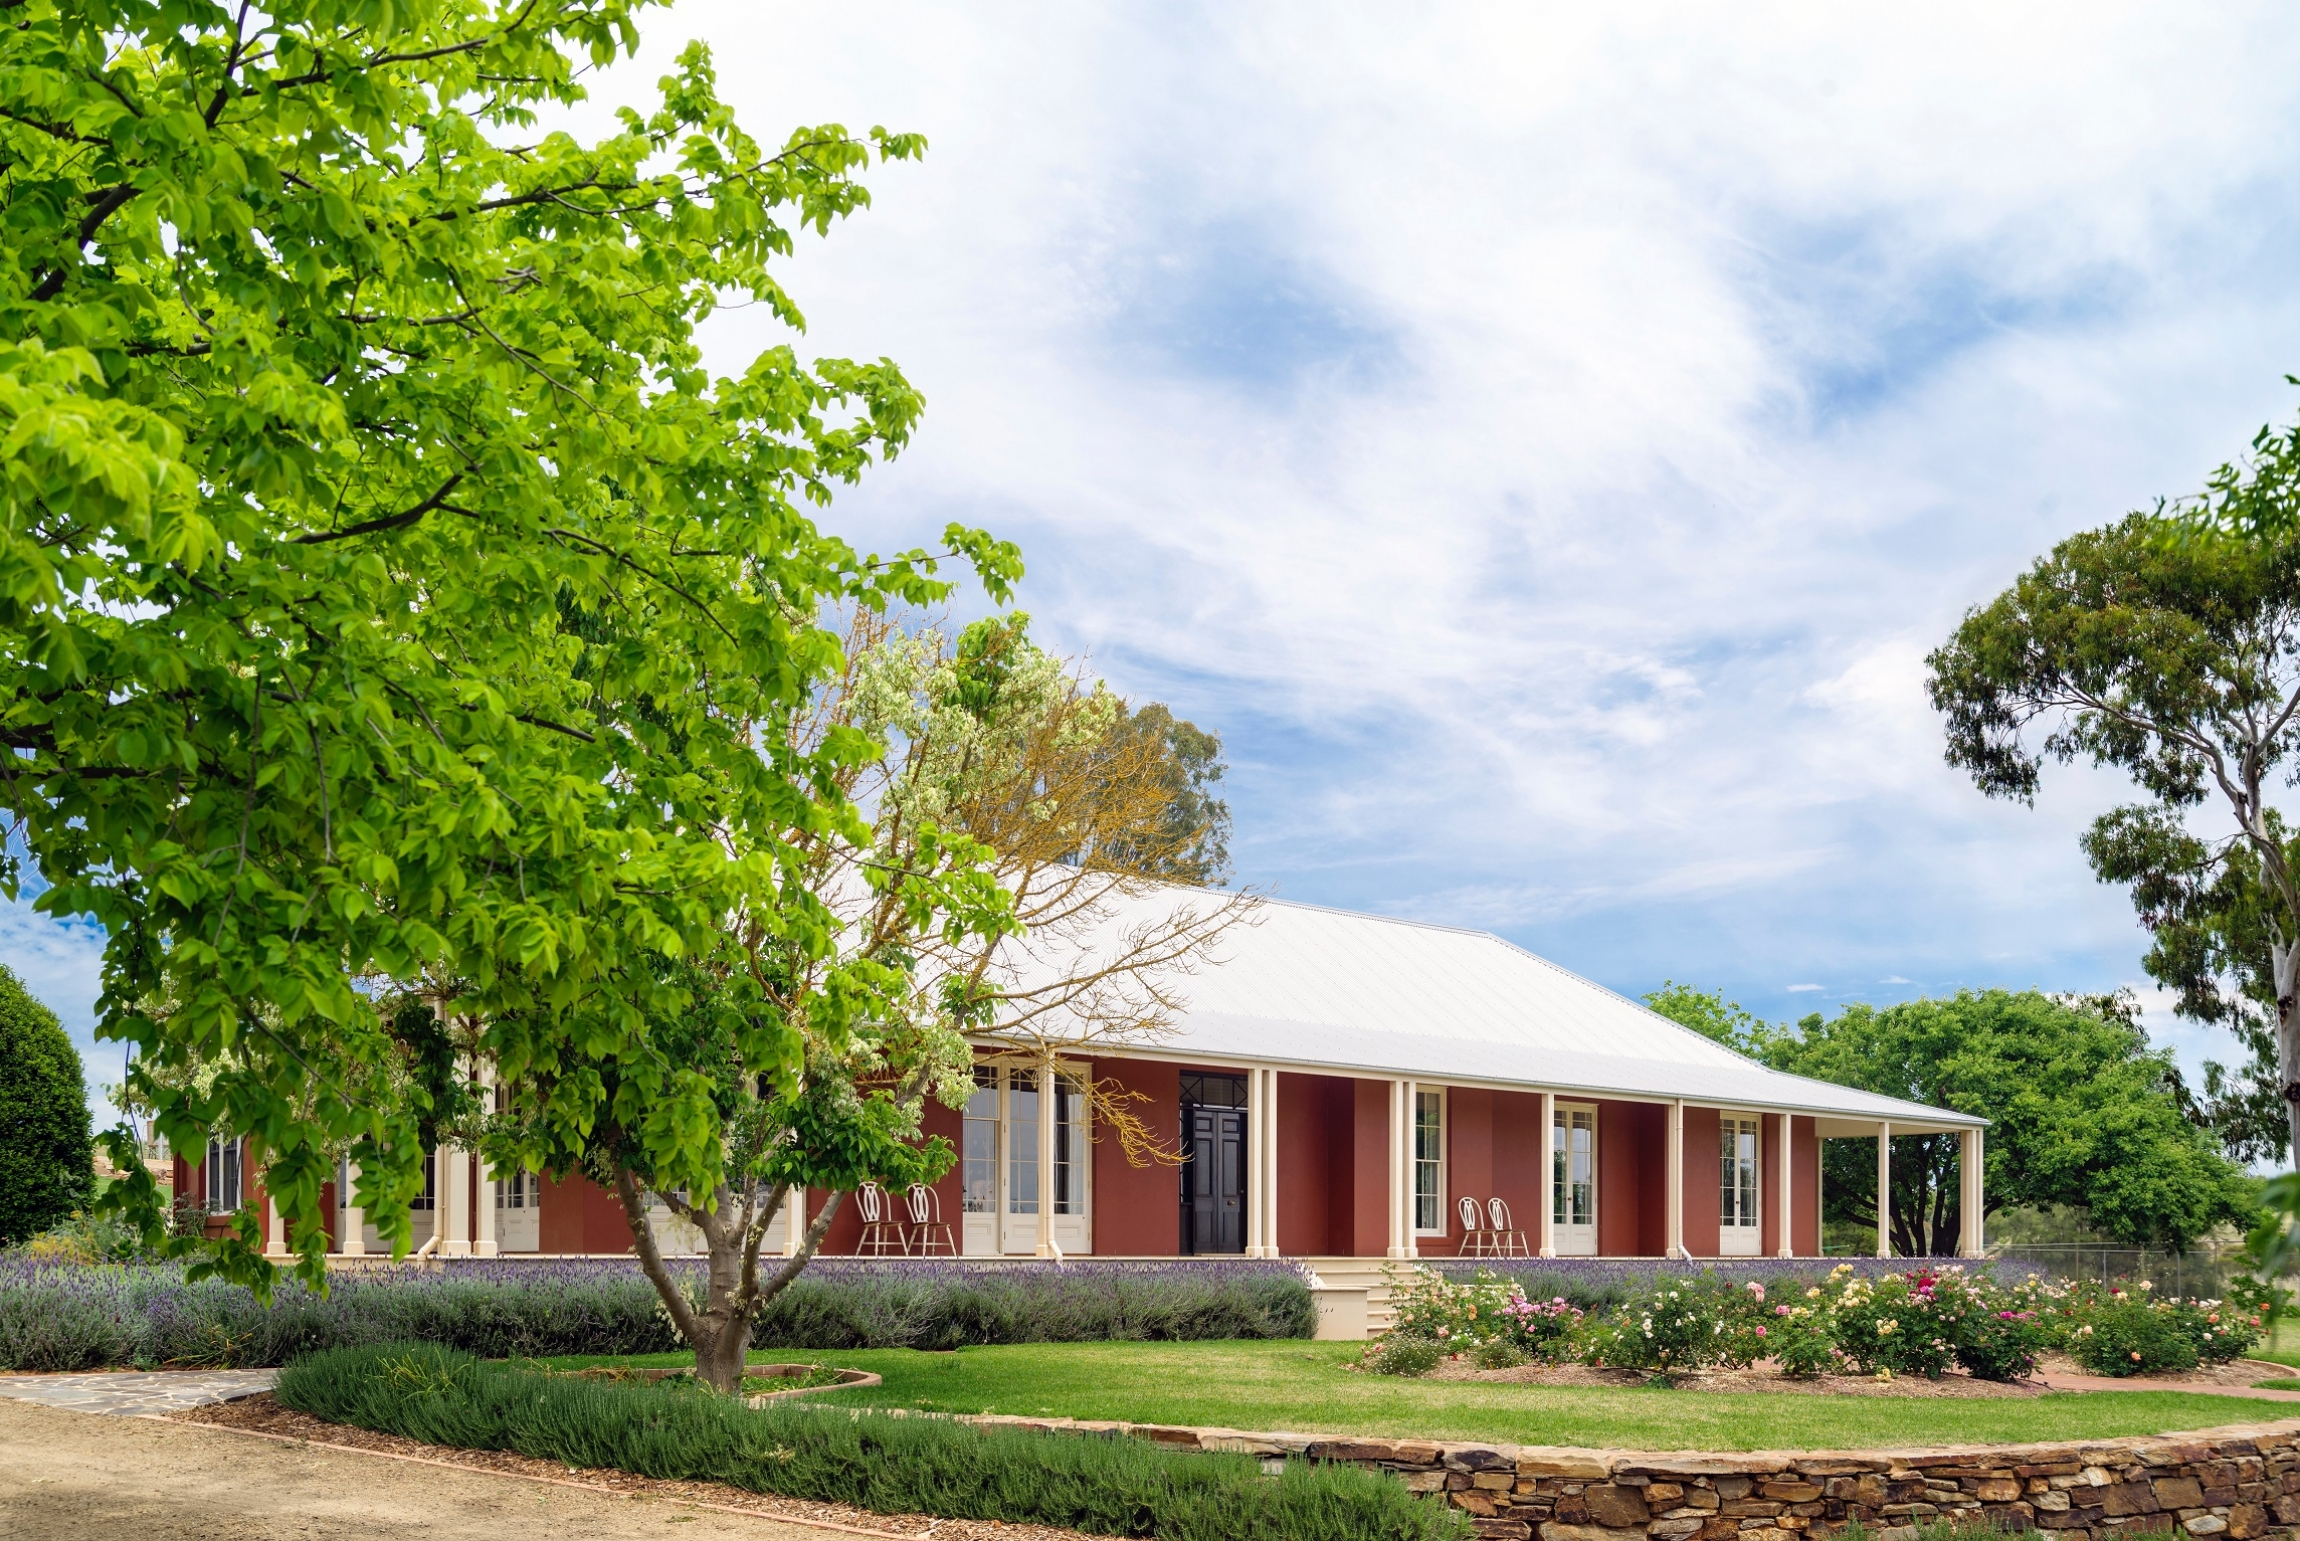 Michael Bell Architects Wagga Wagga Farmhouse Justin Alexander 01H